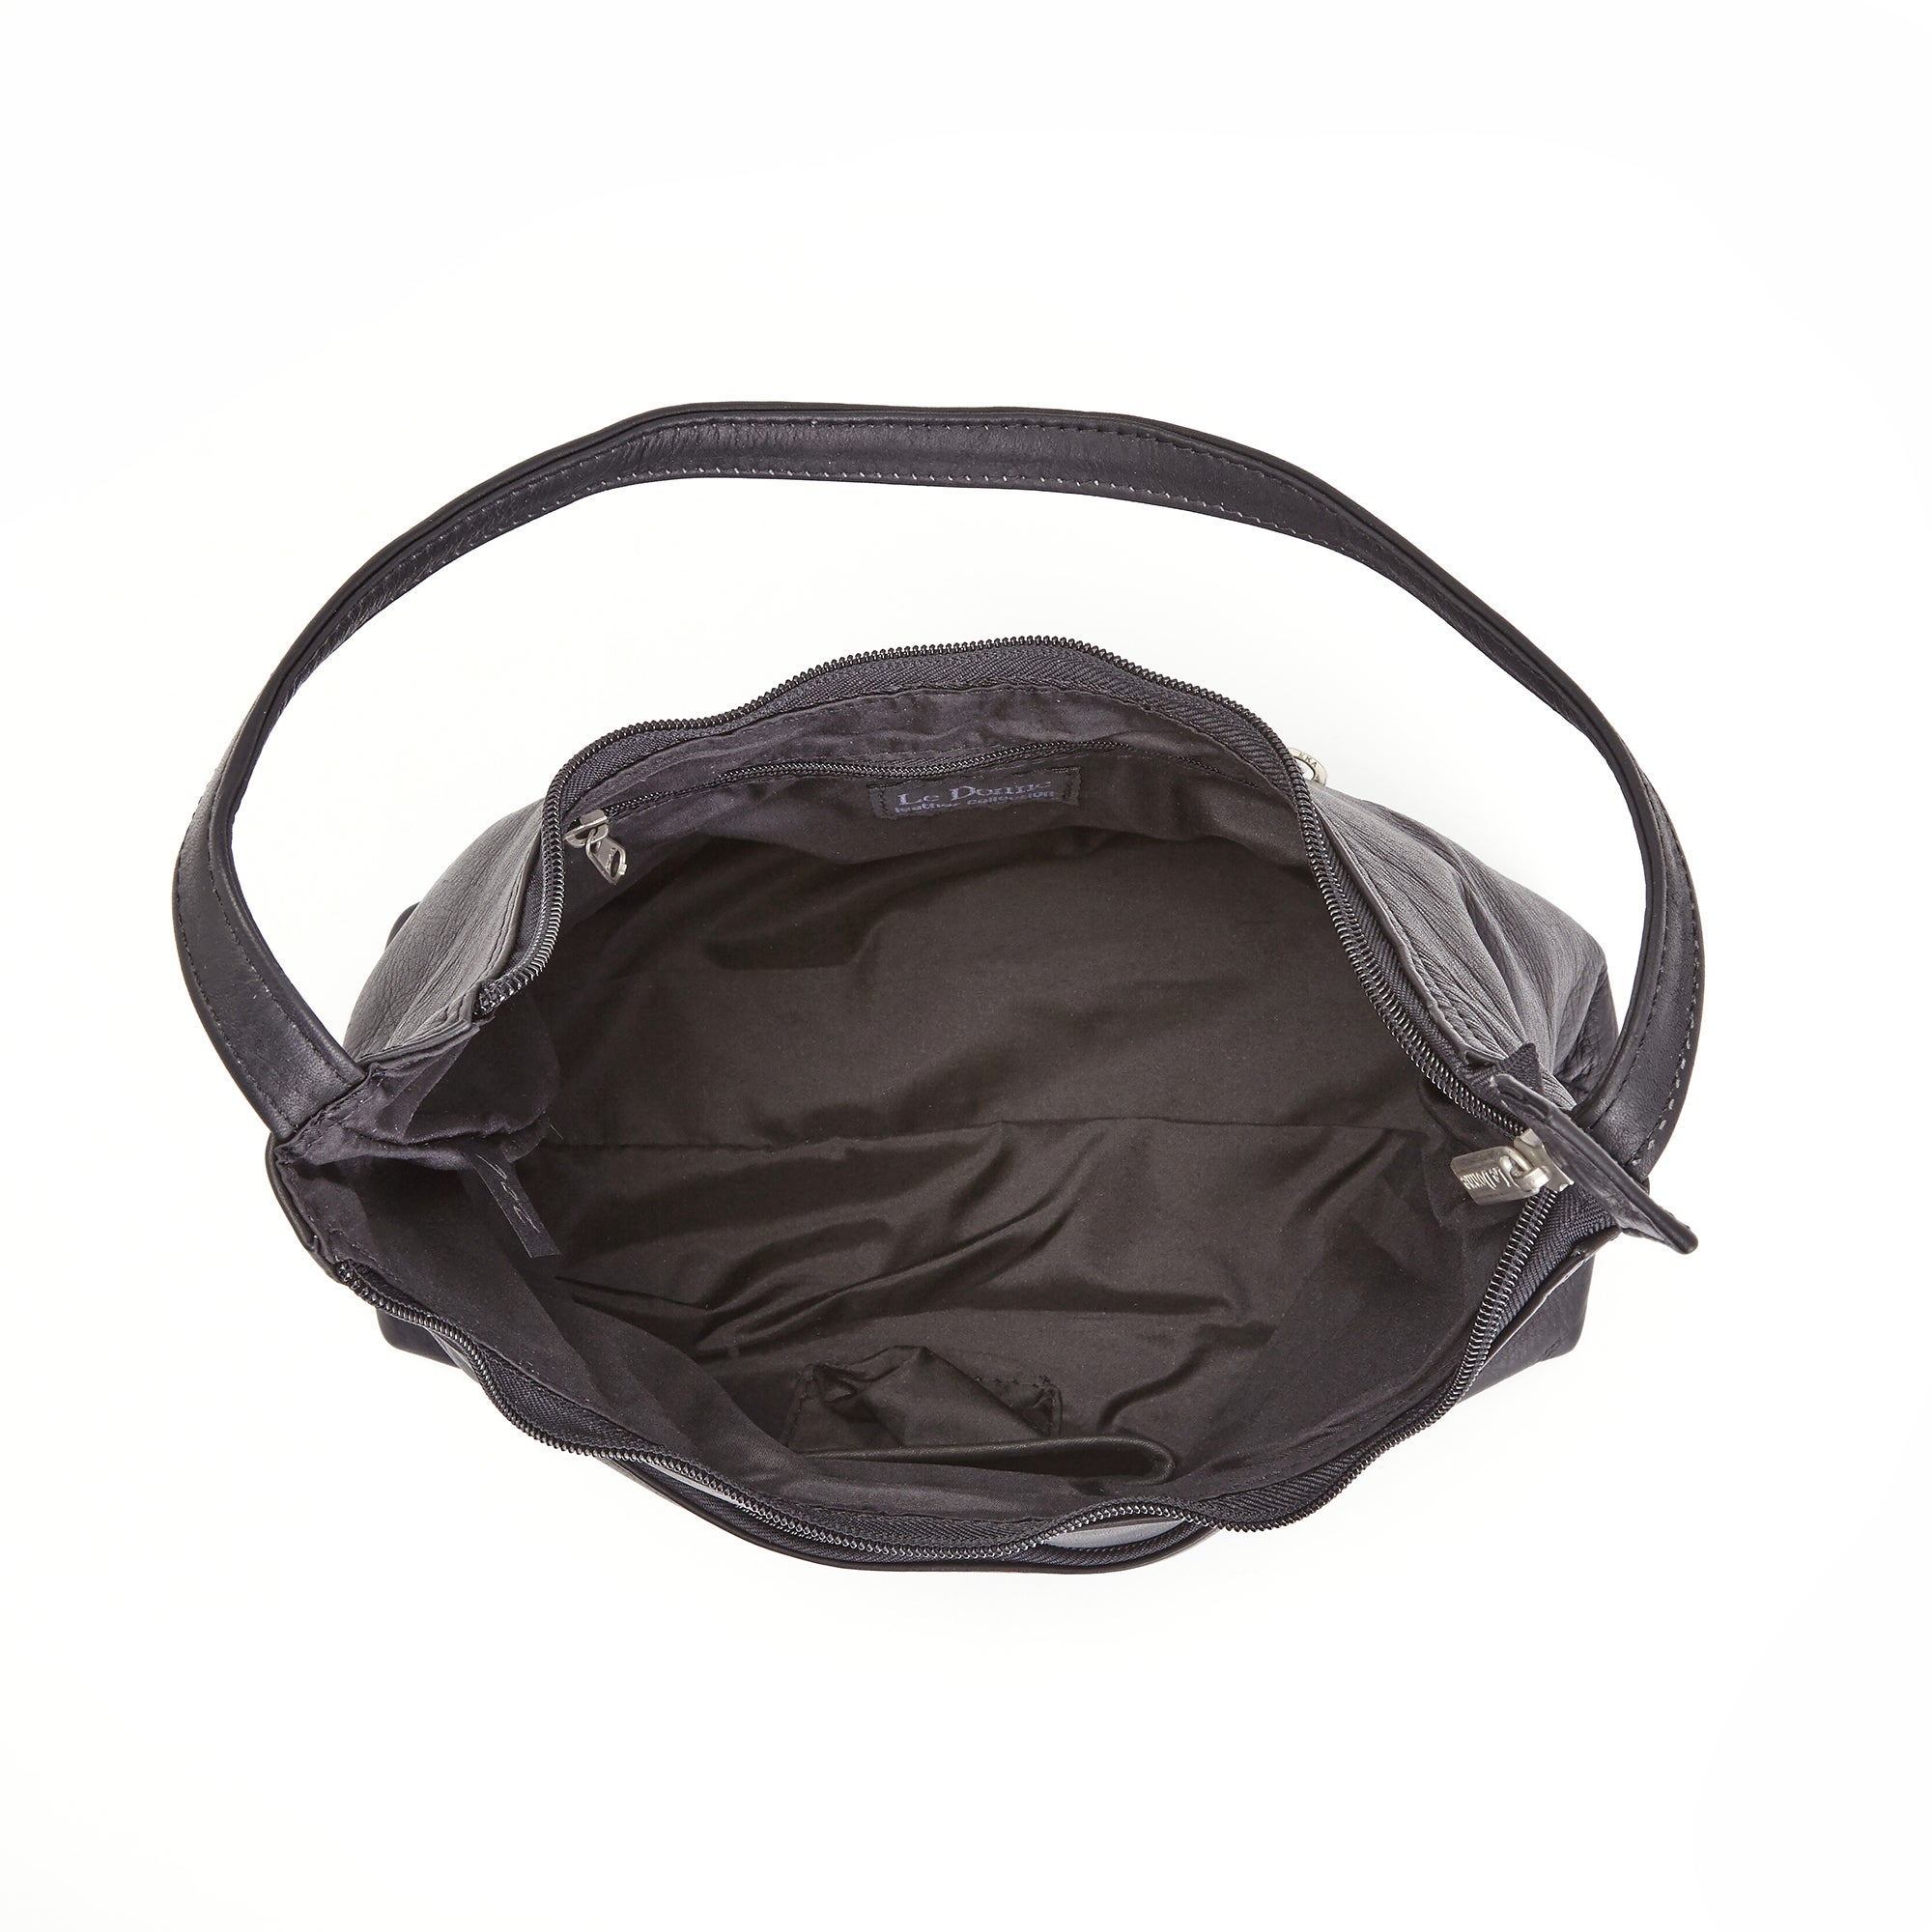 Shop Royce Leather Women s Columbian Leather Black Hobo Handbag - Free  Shipping Today - Overstock.com - 10659293 e08209344182b